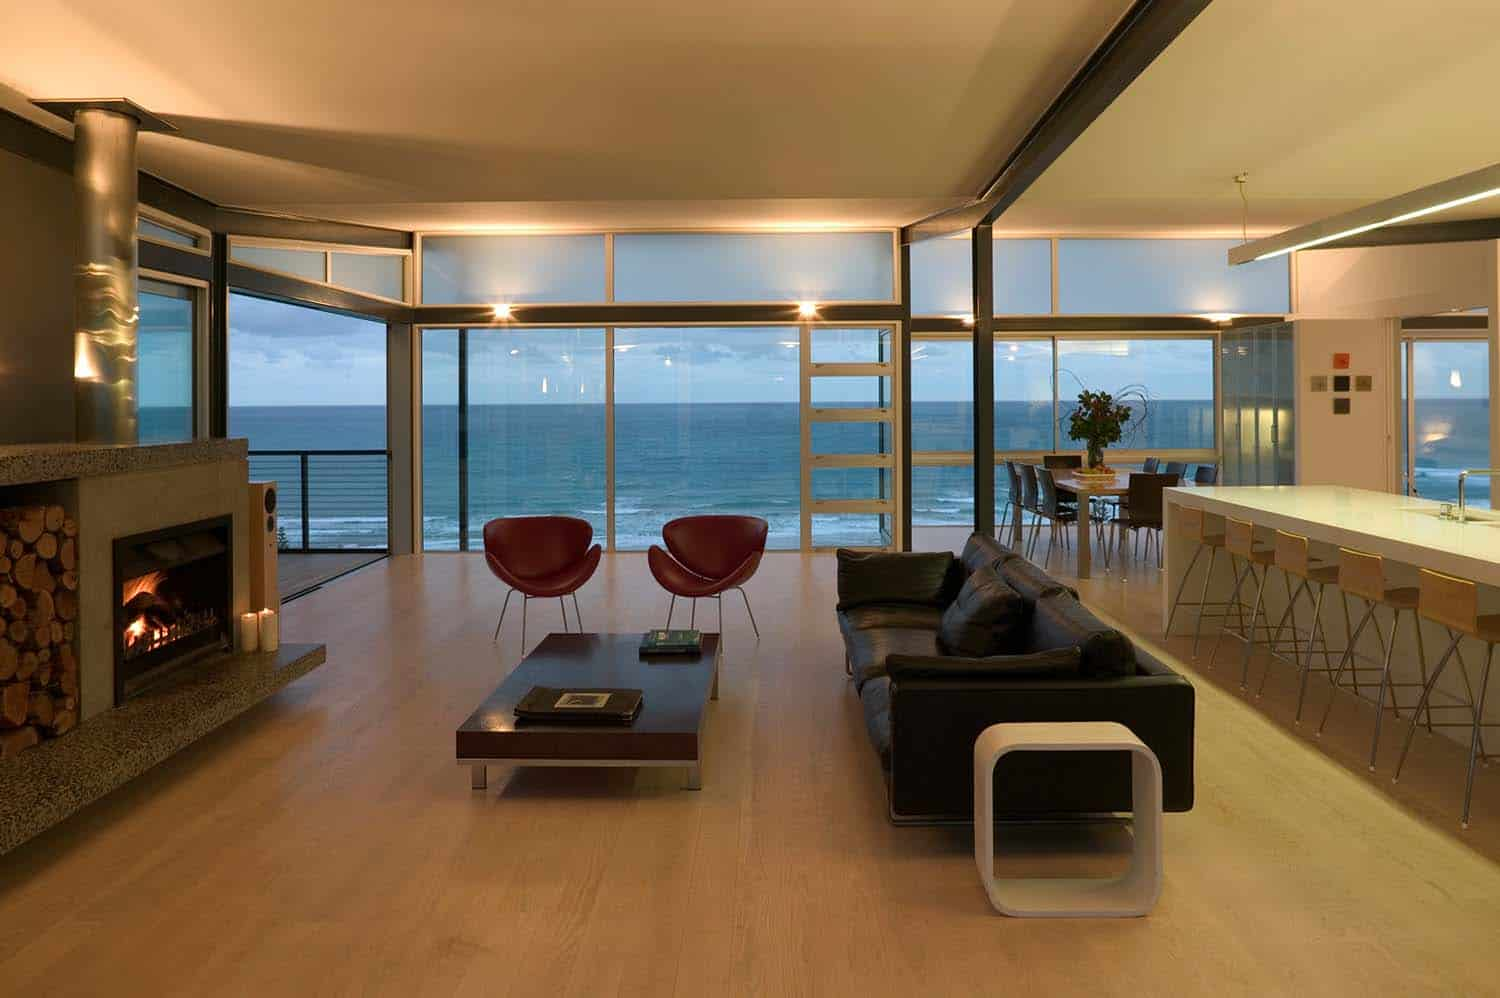 Modern beach house in new zealand embraces its ocean vistas for 4 space interior design